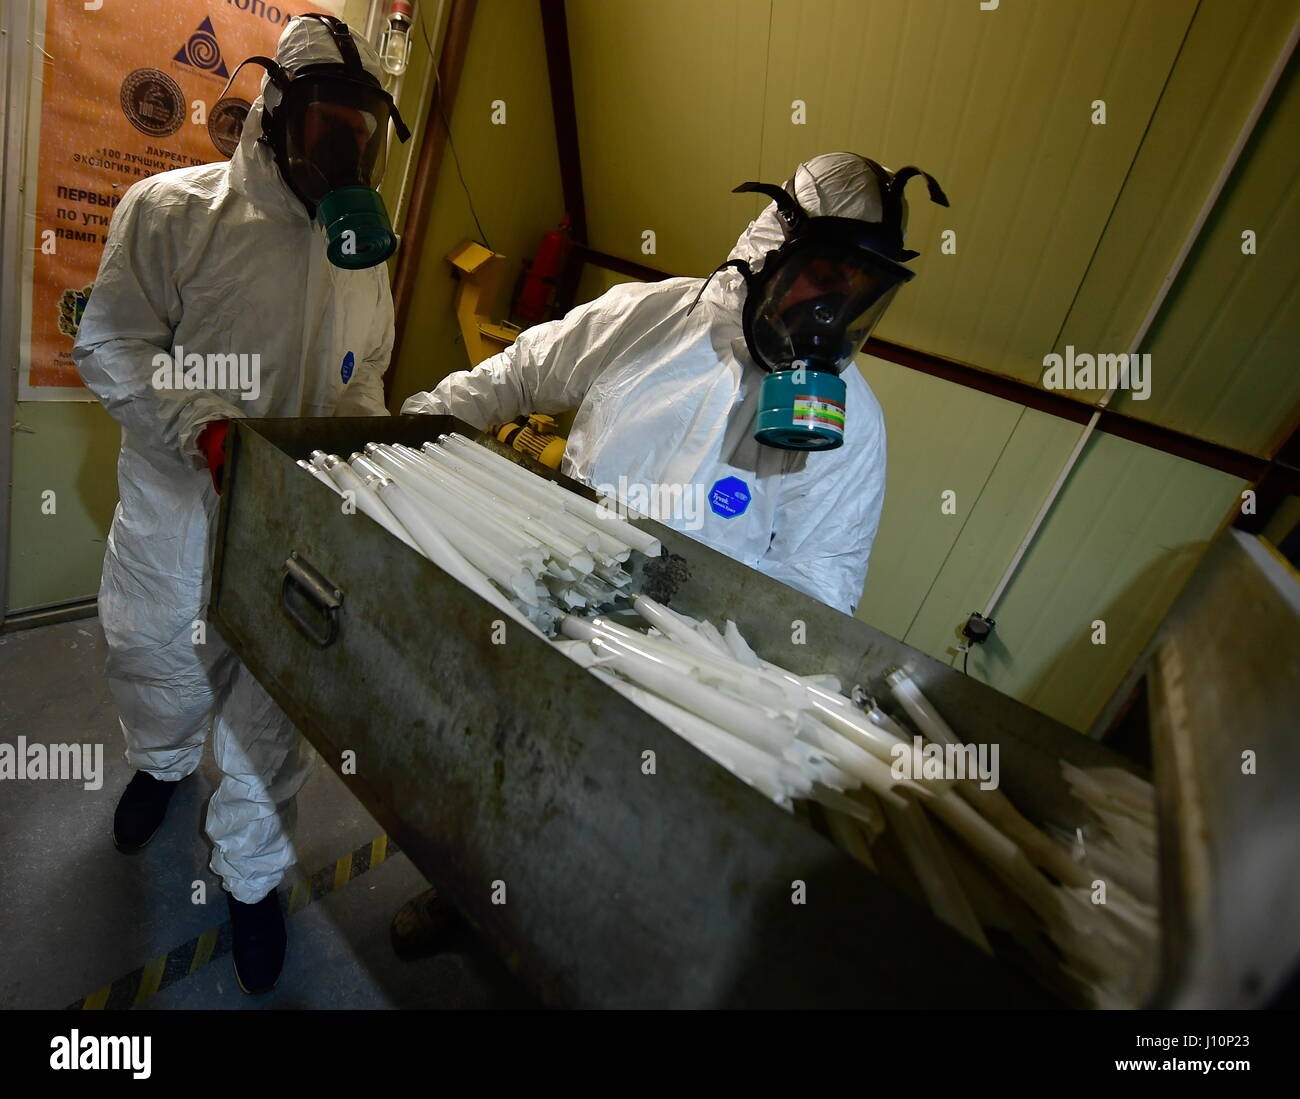 VLADIVOSTOK, RUSSIA - APRIL 18, 2017: An employee wearing a gas mask recycles fluorescent lamps at the PrimTechnopolis - Stock Image